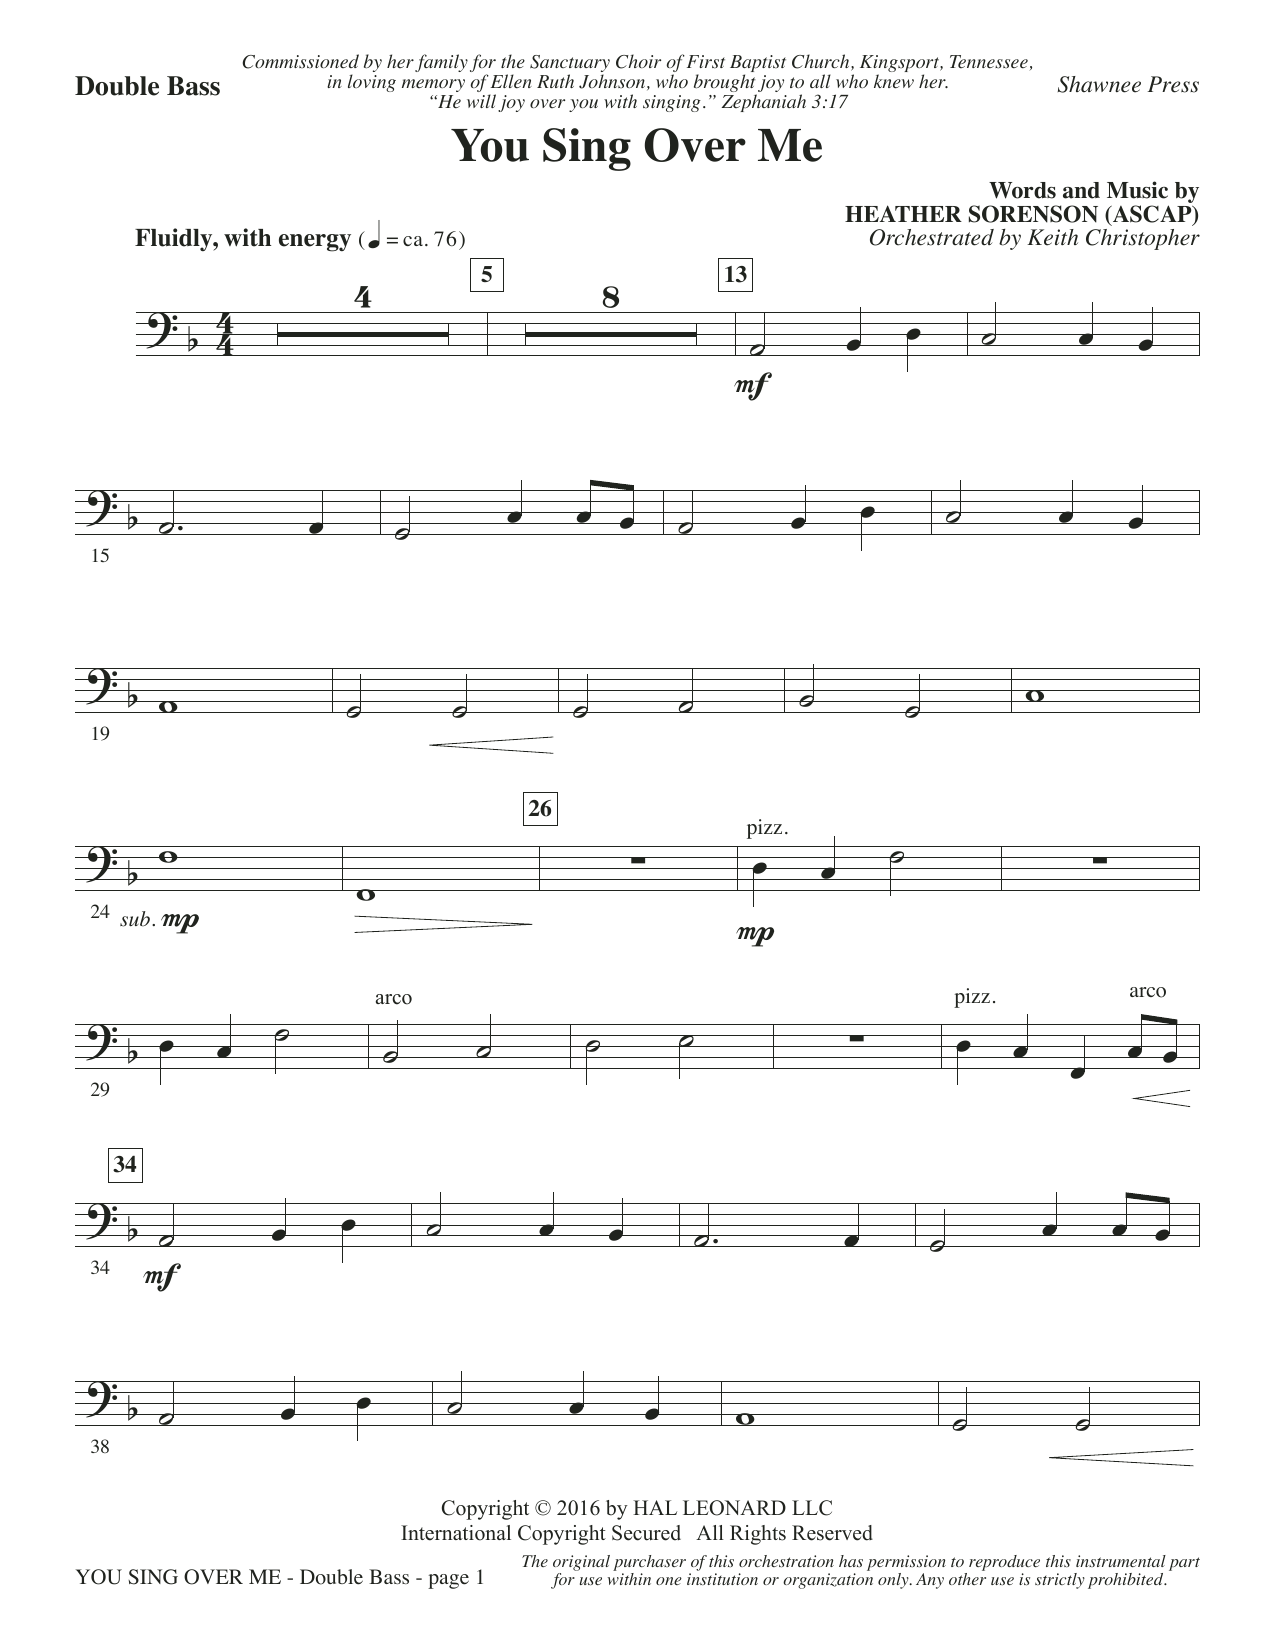 You Sing Over Me - Double Bass Sheet Music